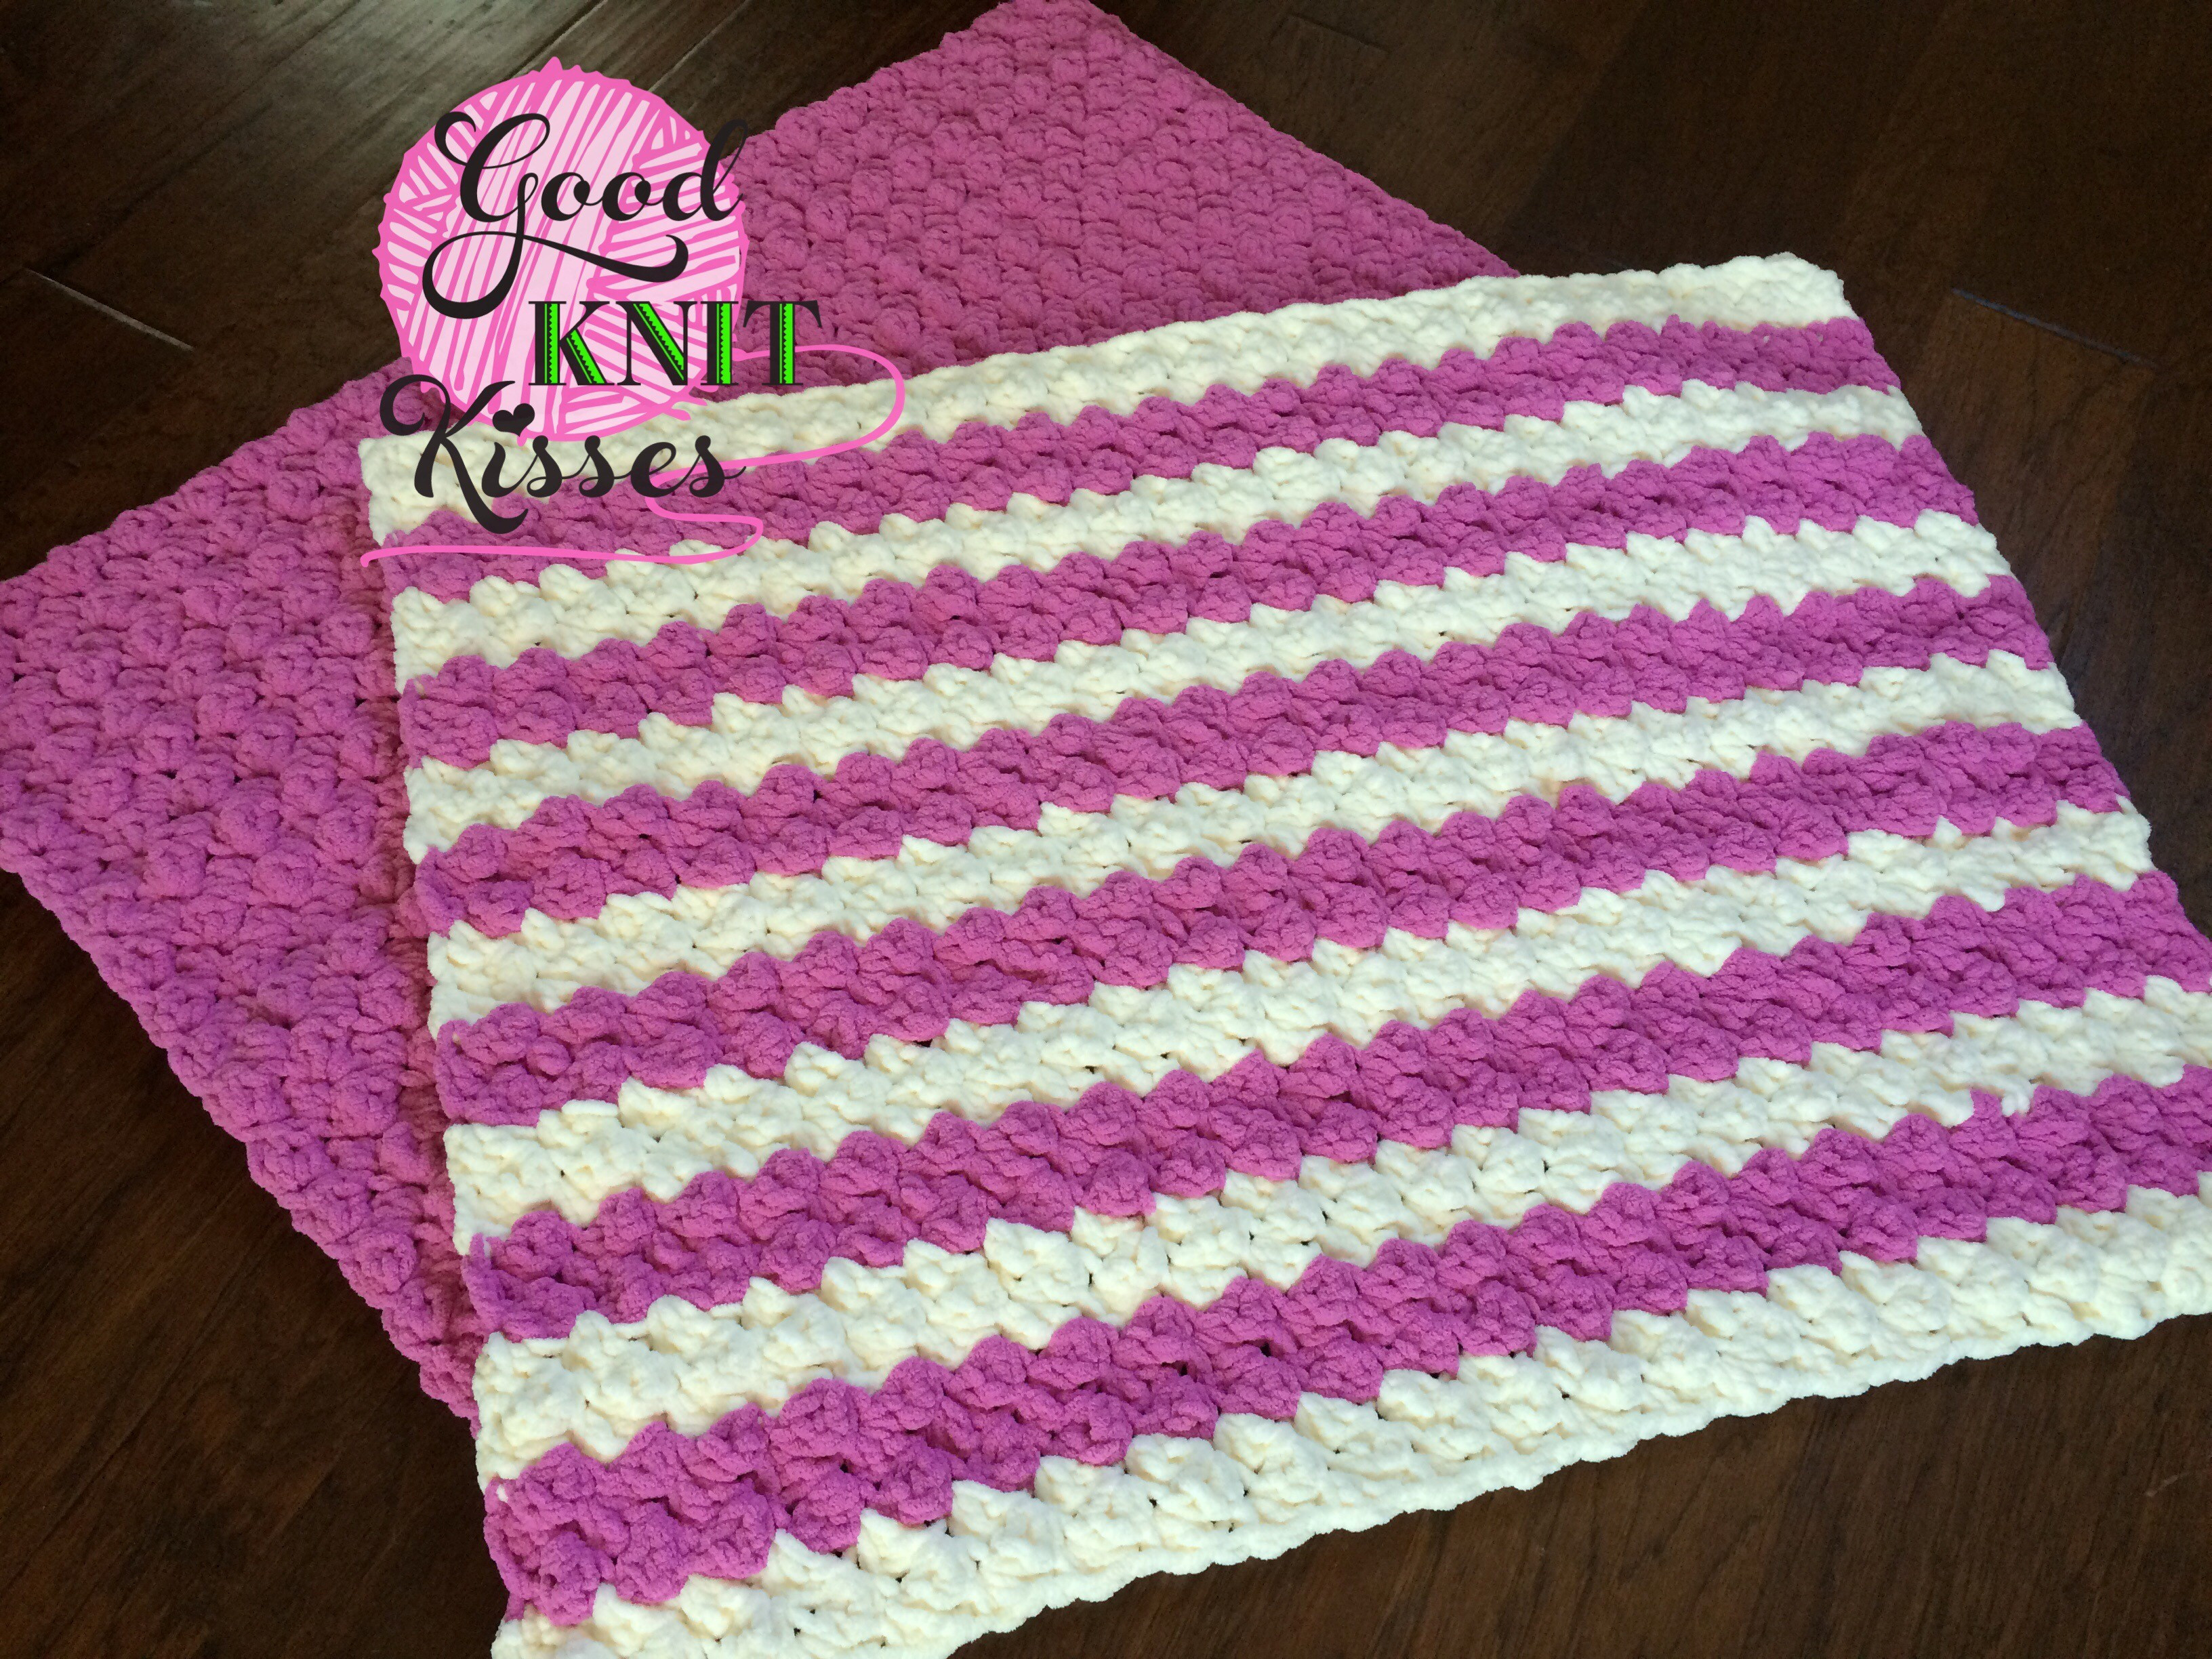 Baby Girl Crochet Blanket Patterns Luxury Crochet Baby Blanket Patterns for Beginners Videos Of Unique 41 Photos Baby Girl Crochet Blanket Patterns